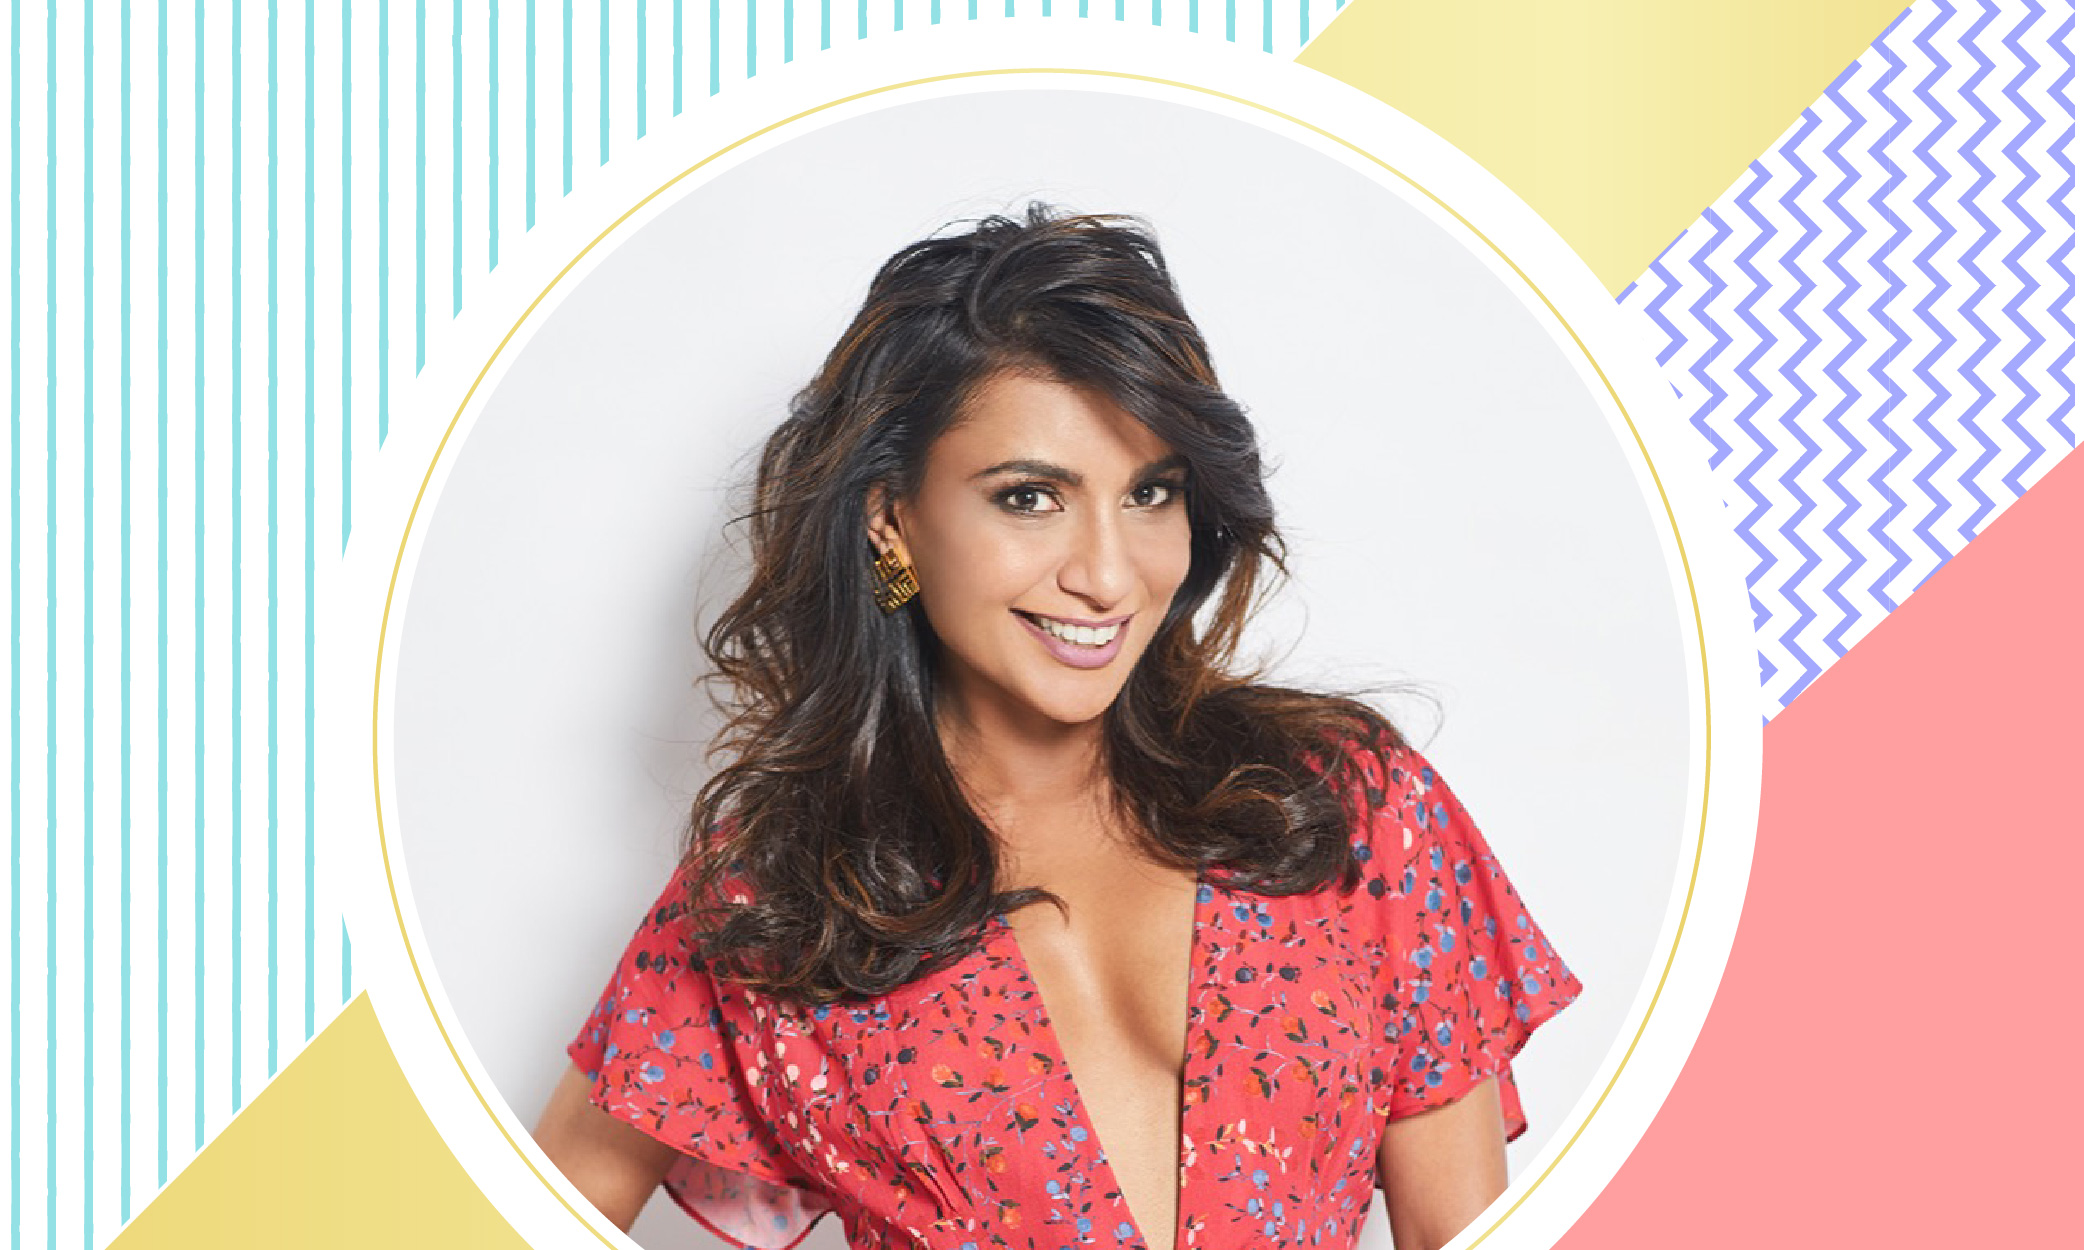 an image of entrepreneur Malini Agarwal aka Miss Malini against an illustrated backdrop of a motley of colours and patterns such as yellow and pink.